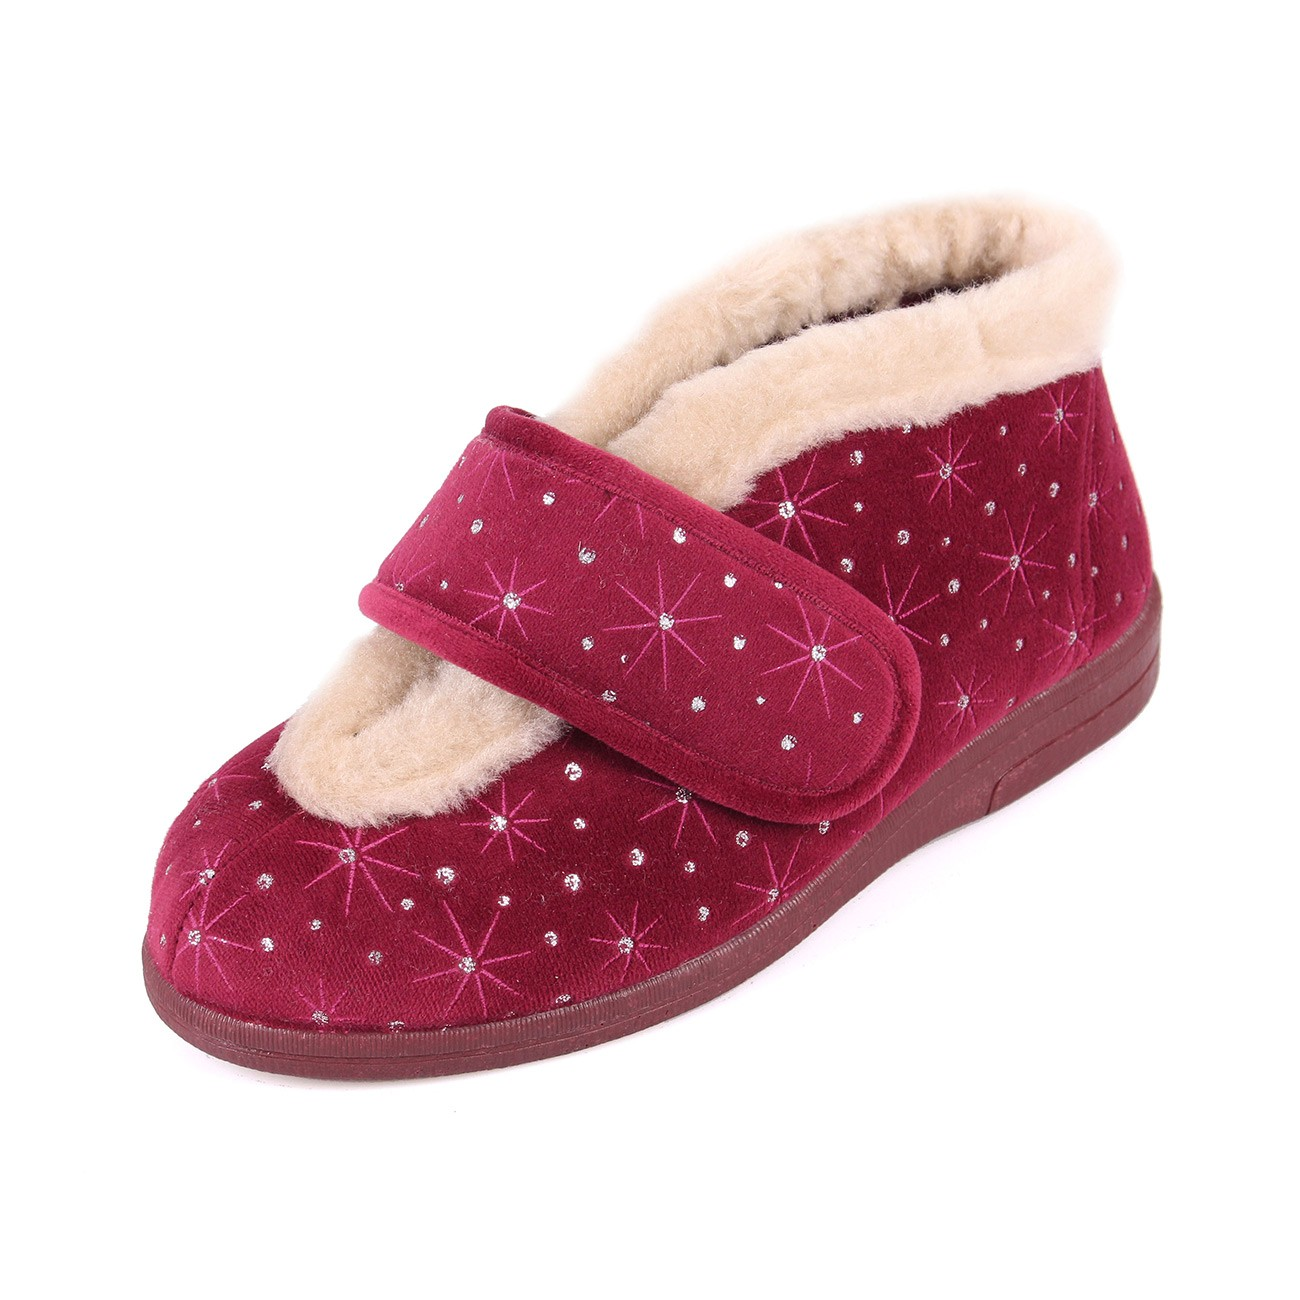 Sandpiper Val Wine Starburst Ladies Slipper